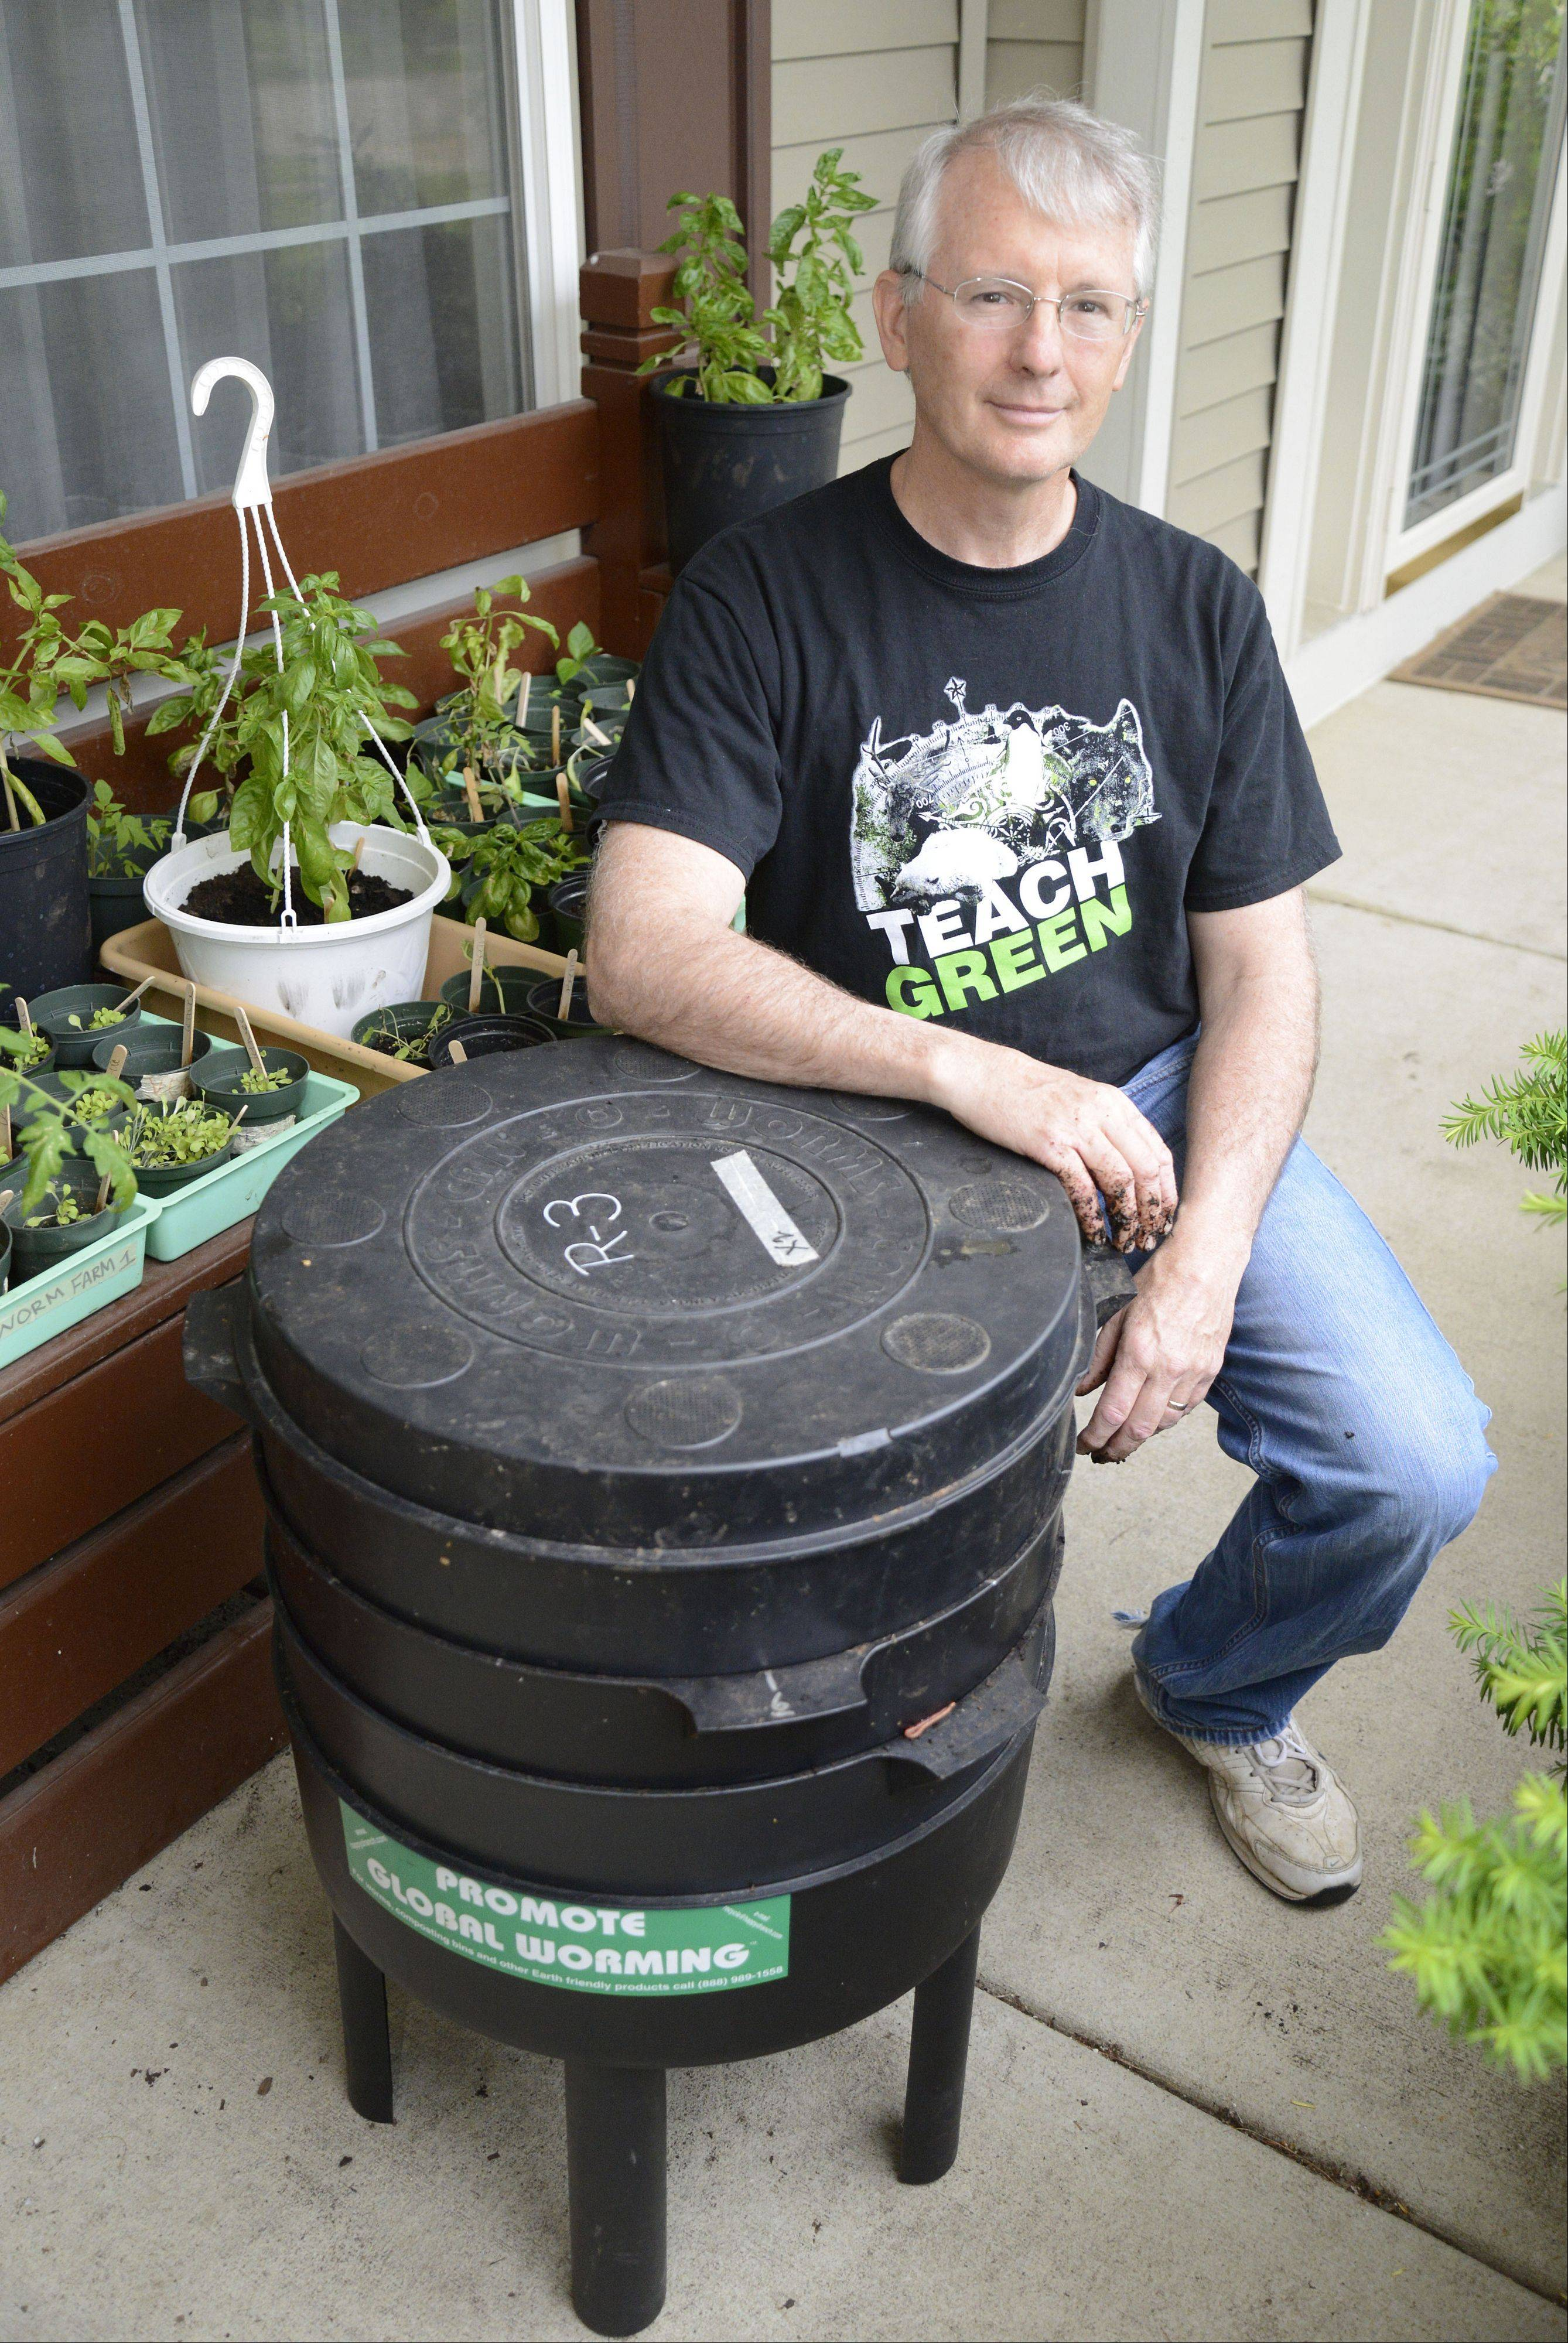 Greg Reiva of Algonquin, a physical science teacher at Streamwood High School, brought the worm farms and hydroponic garden from his classroom home to tend last summer.